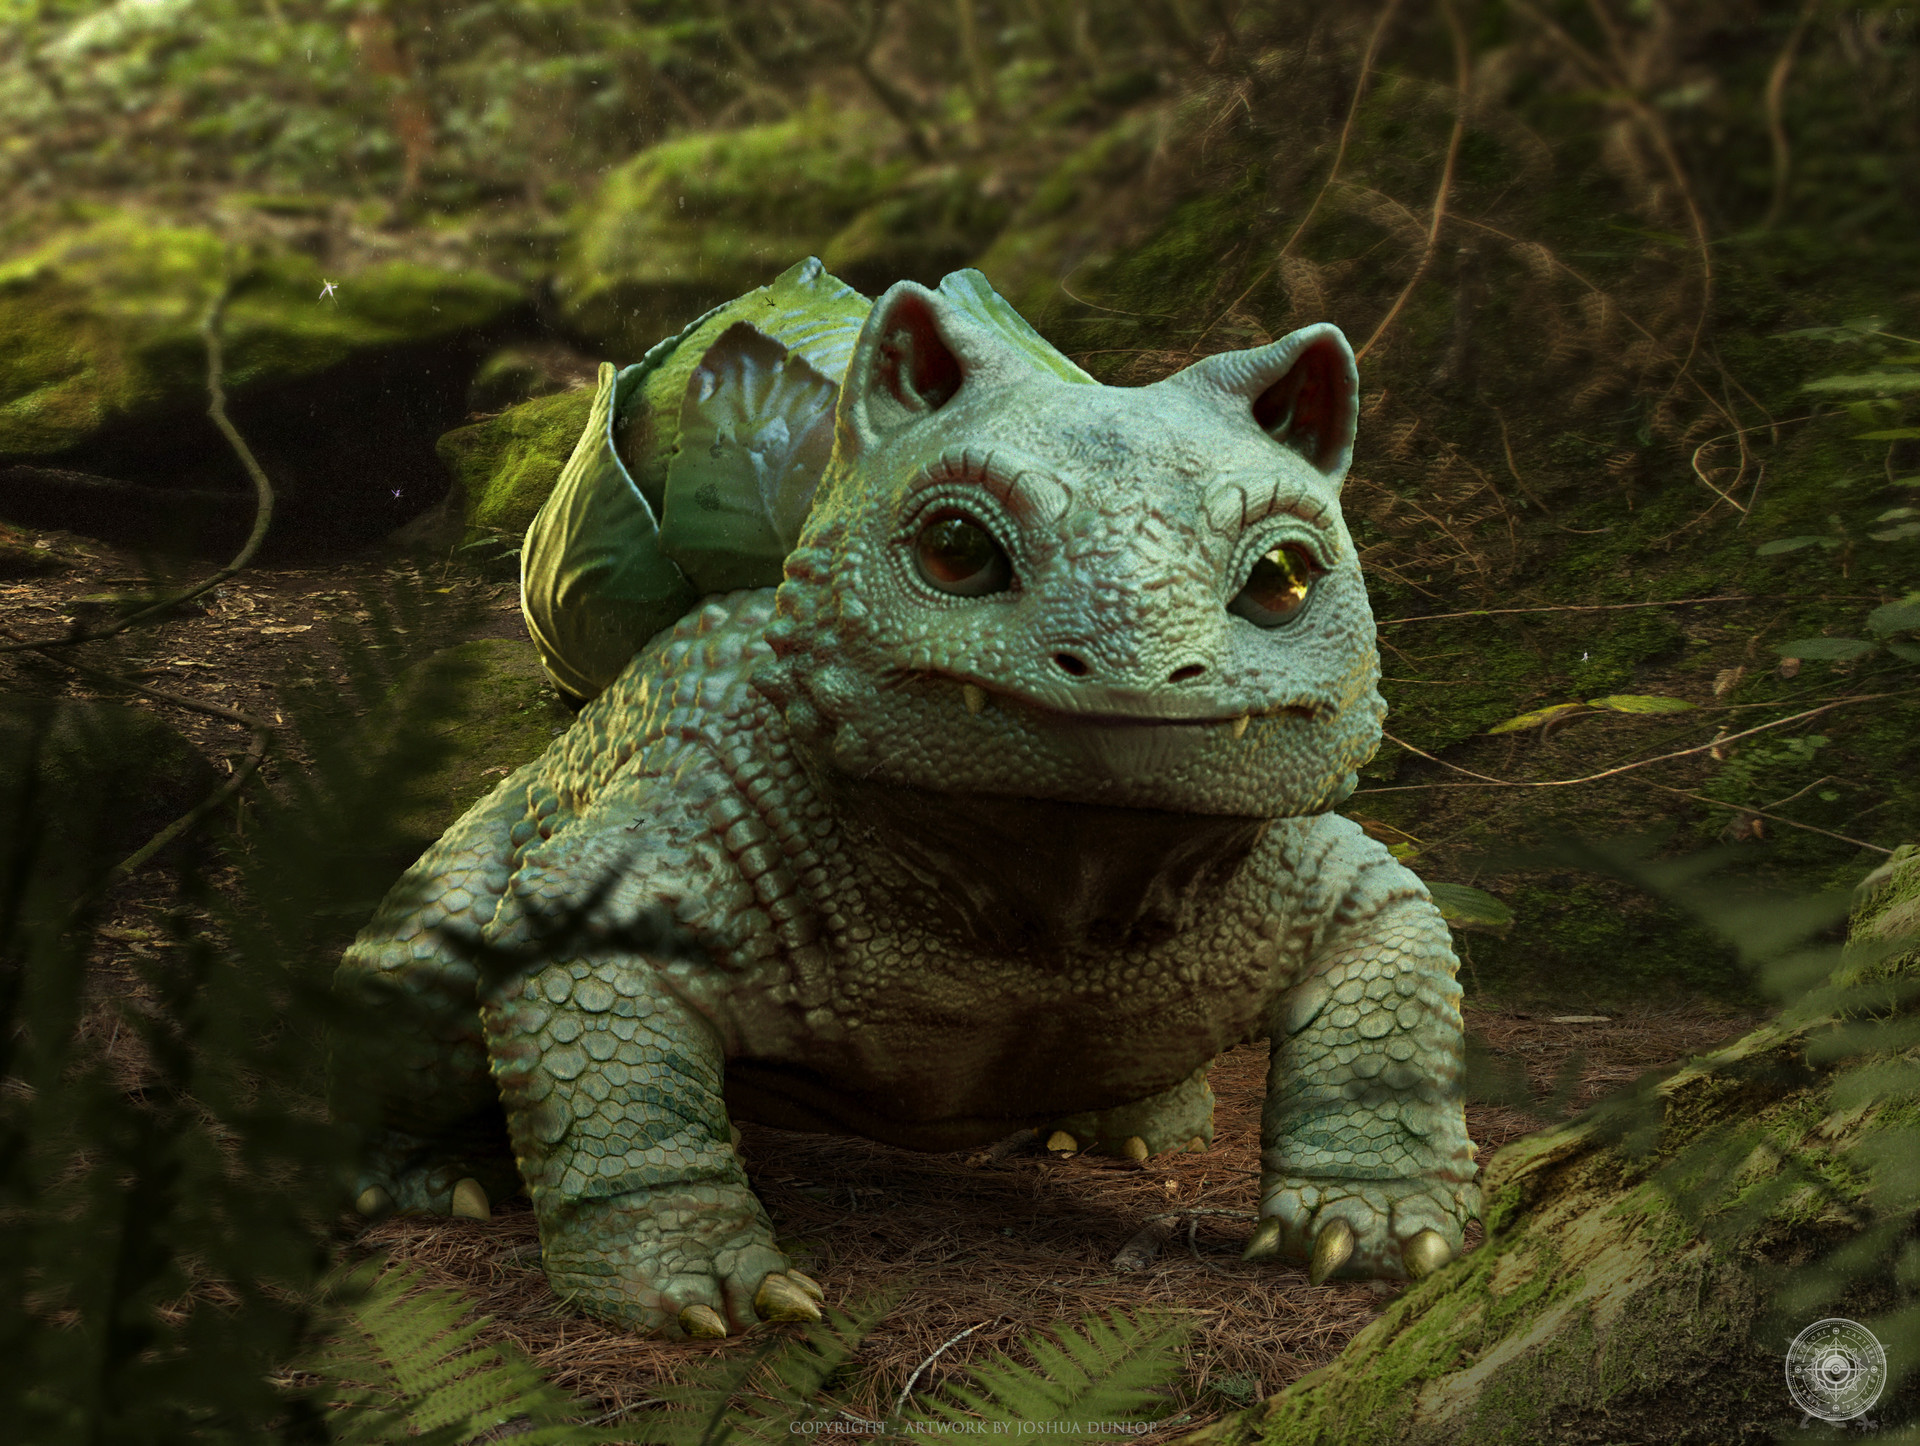 Digital artist creates amazing recreations of Pokemon